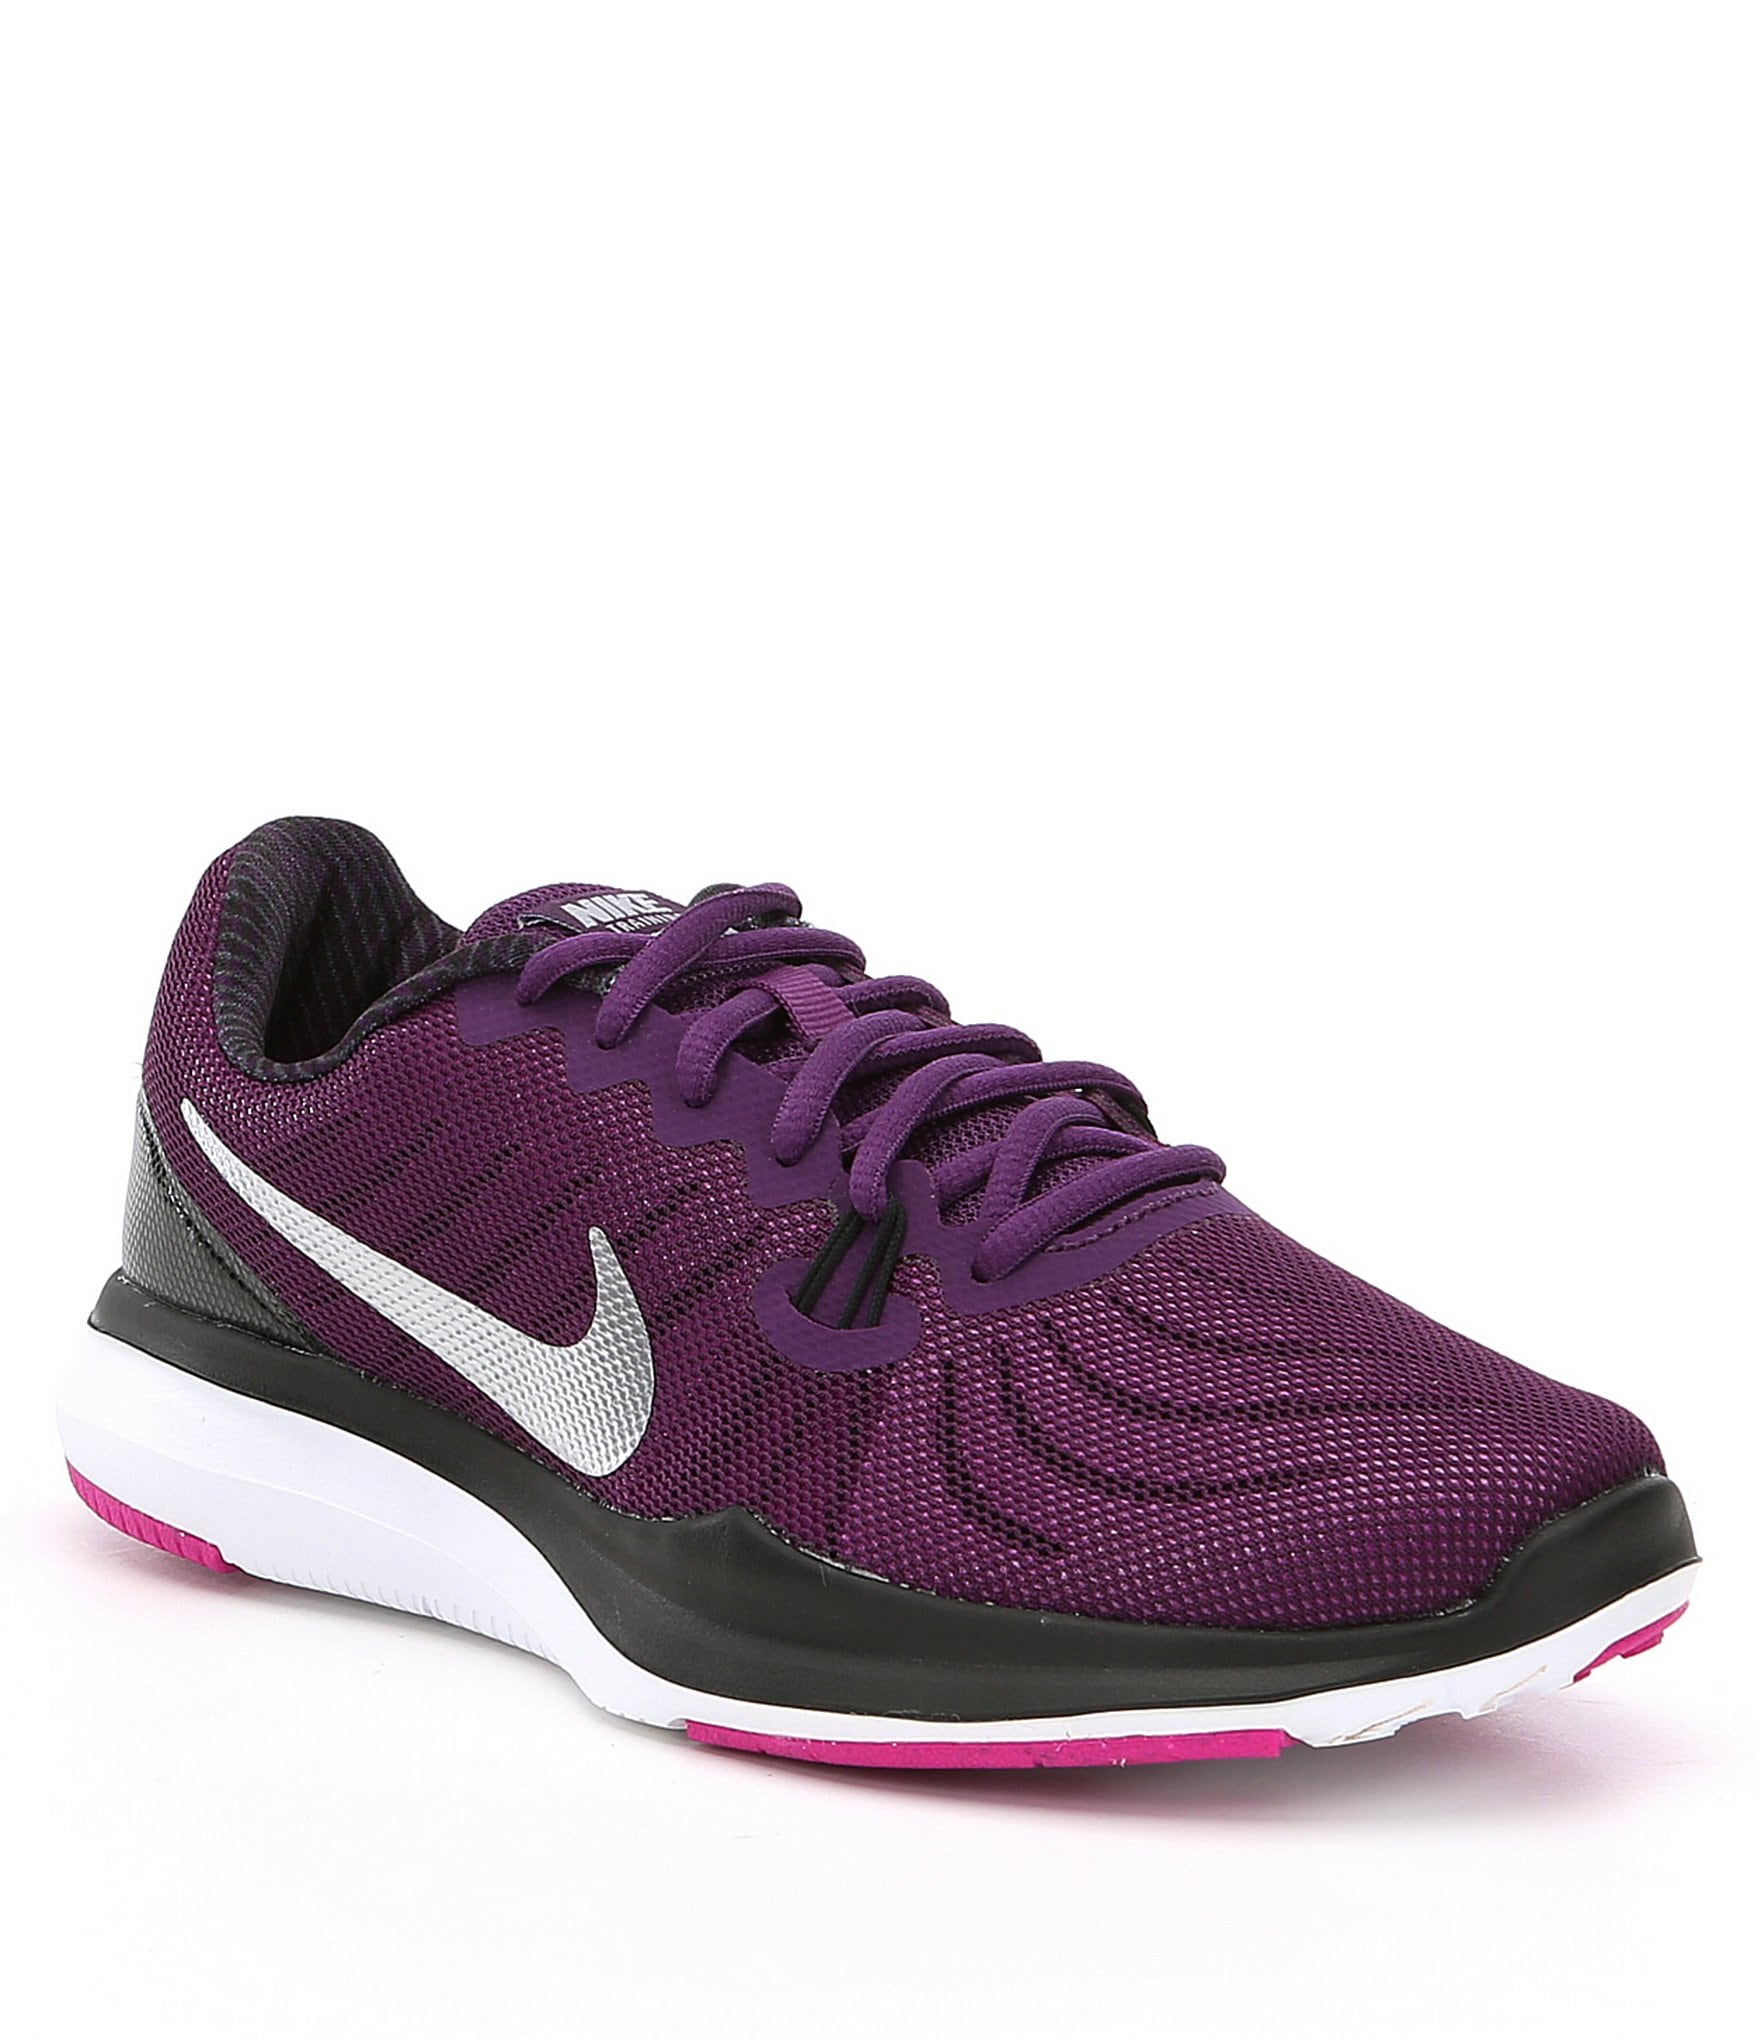 nike roshe run floral silver purple shoes clearance